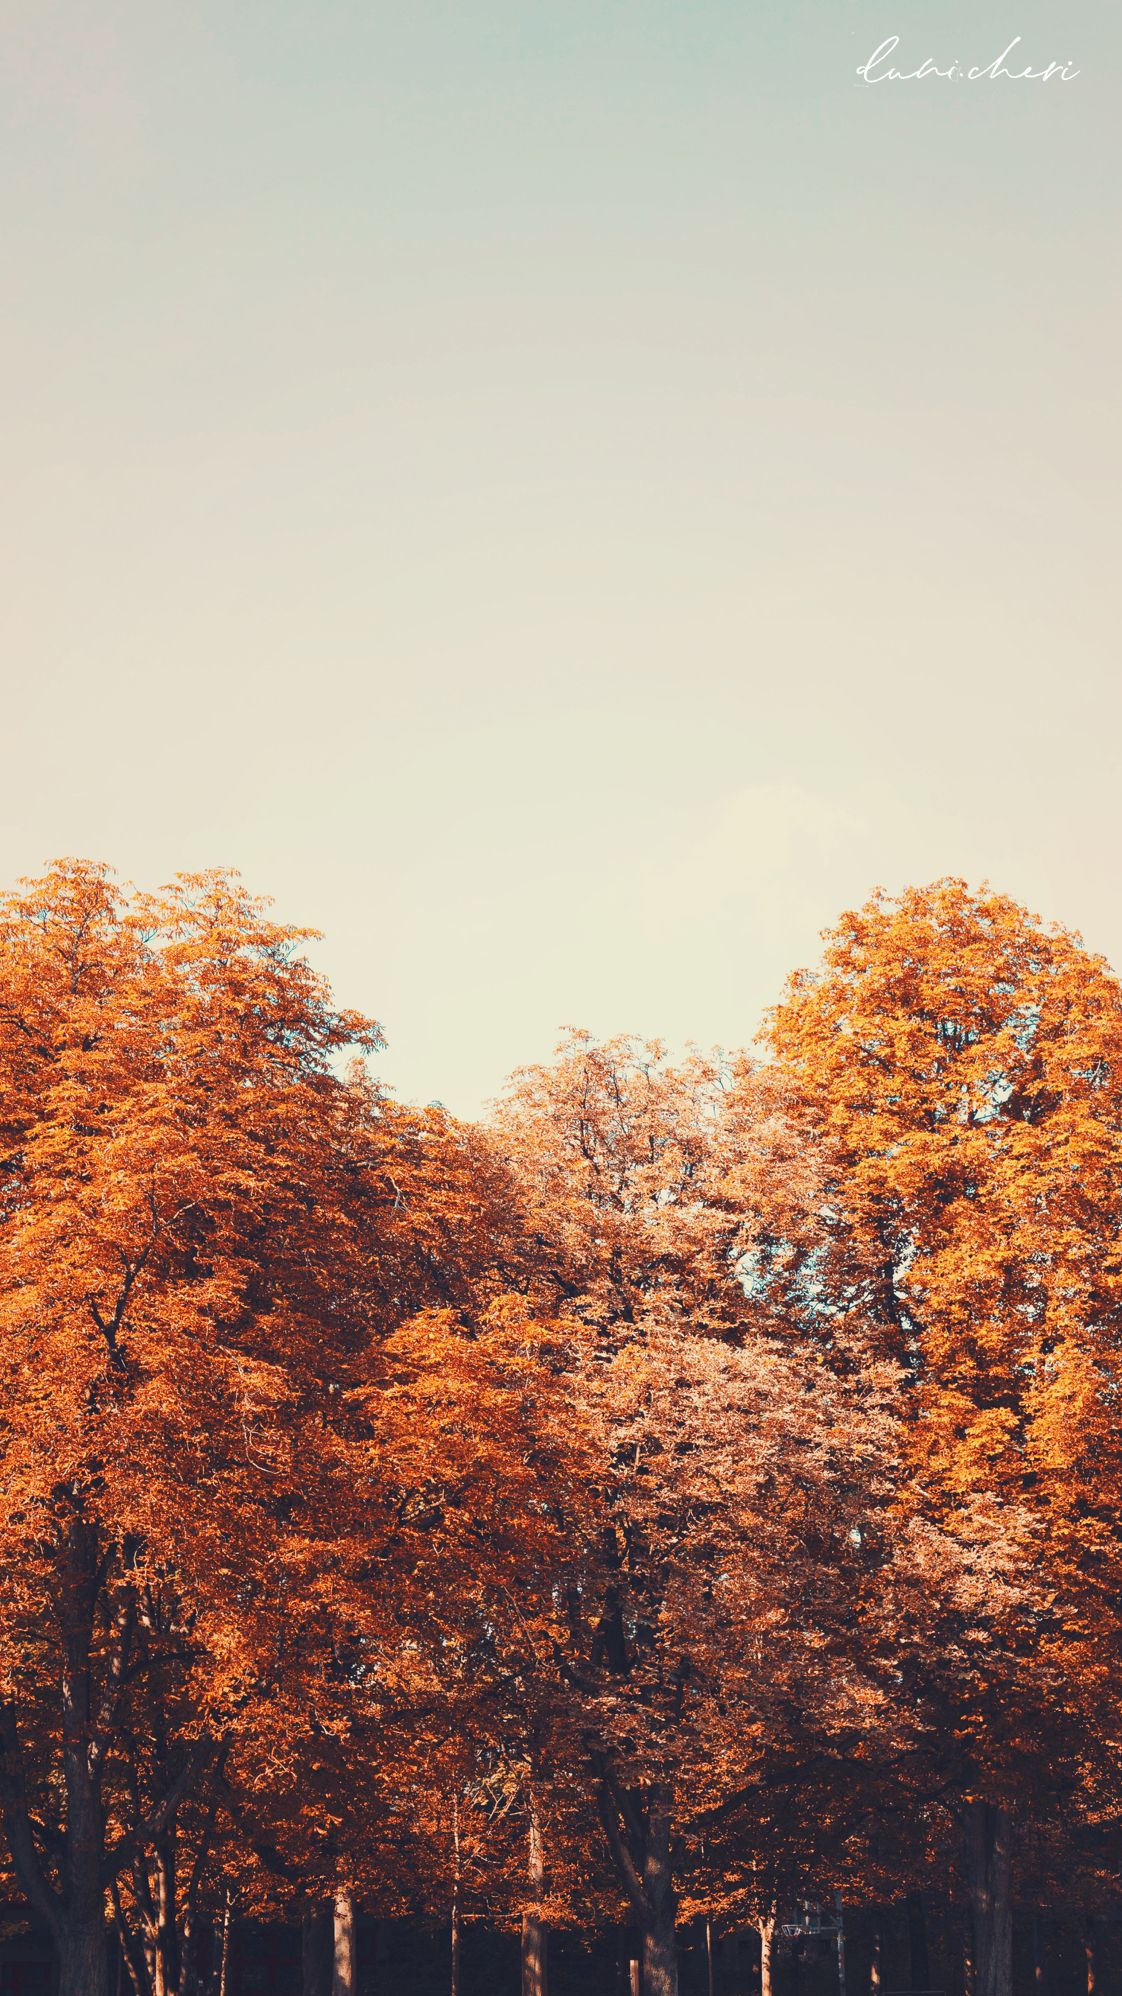 Free Download: Autumn Wallpaper ♥ Desktop & Mobile #wallpaper